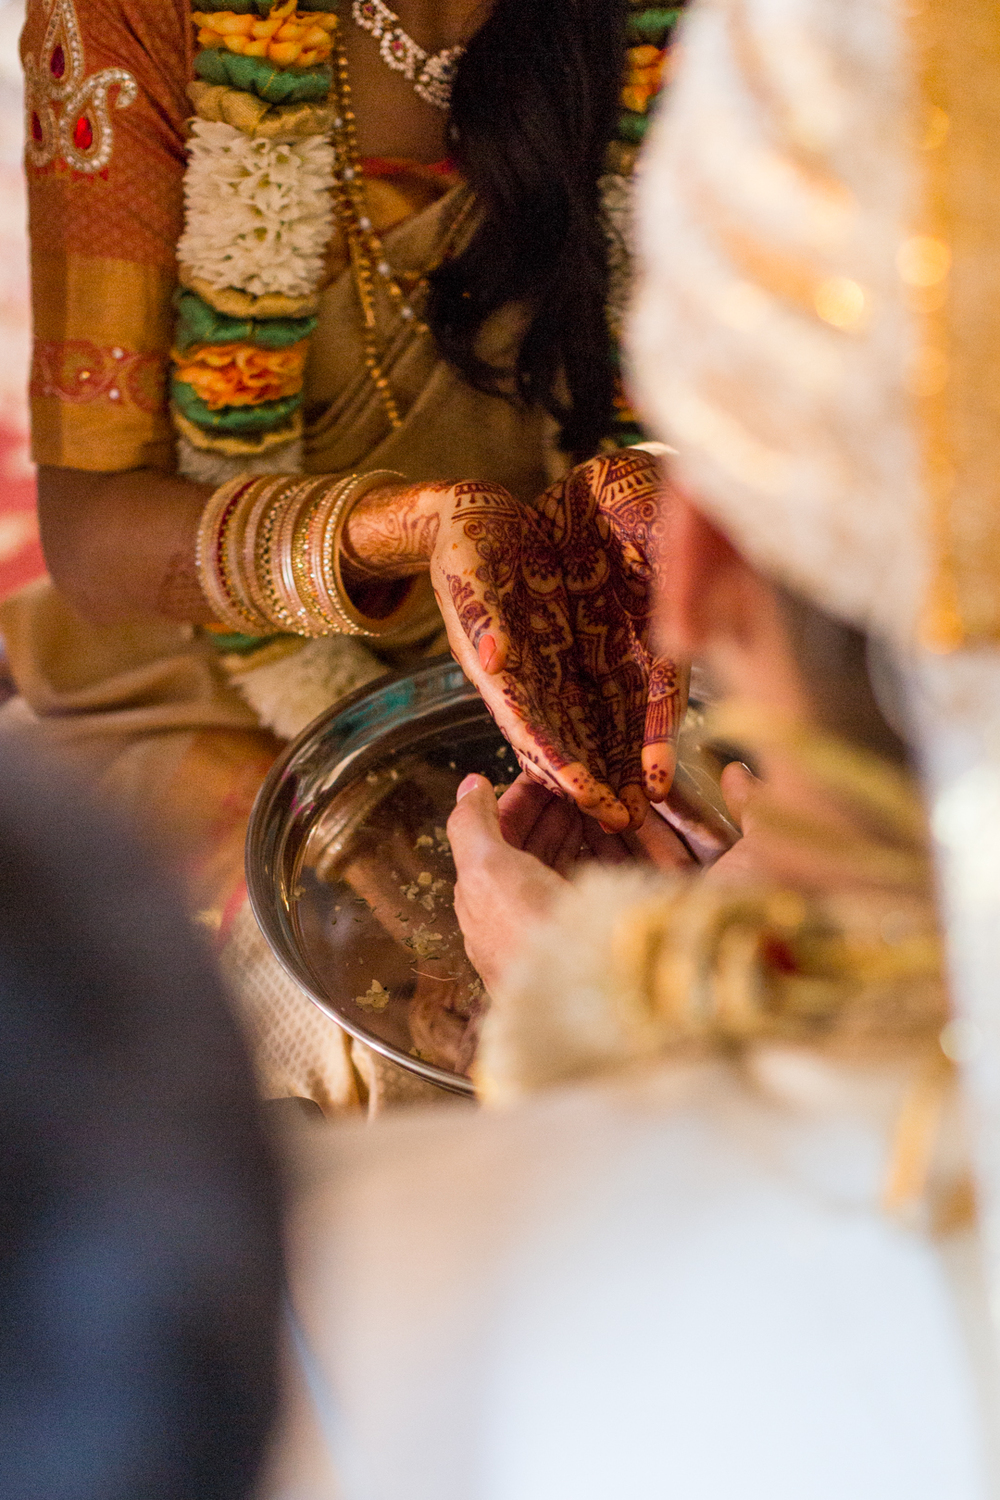 CourtneyPaige_WeddingPhotography_Nagjee-61.jpg